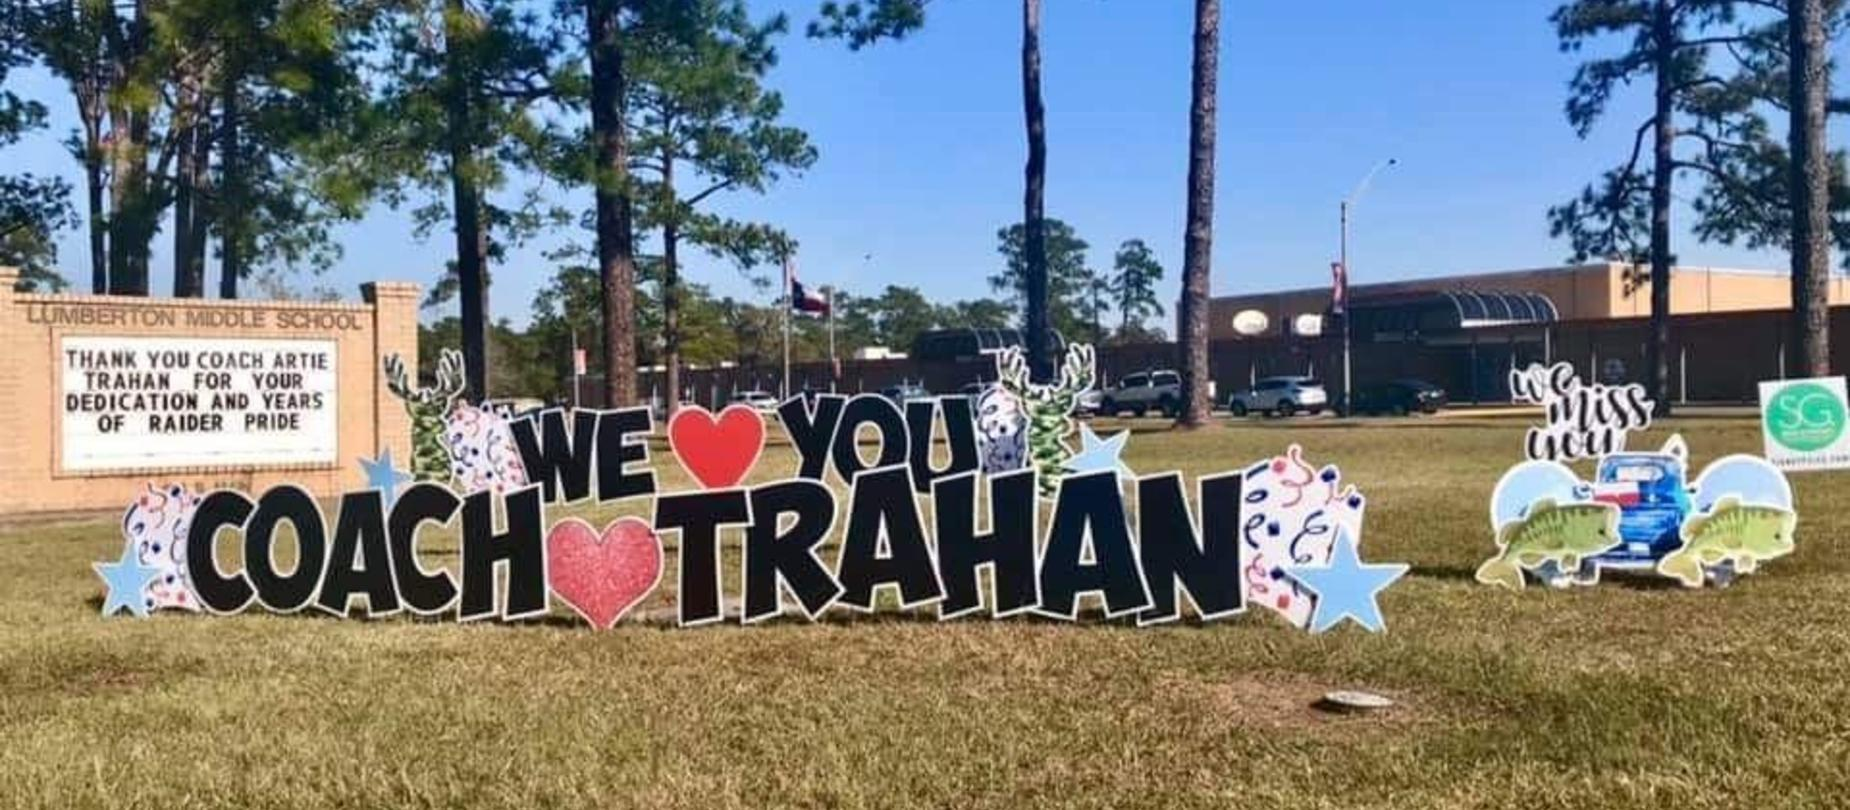 We will miss you Coach Trahan!